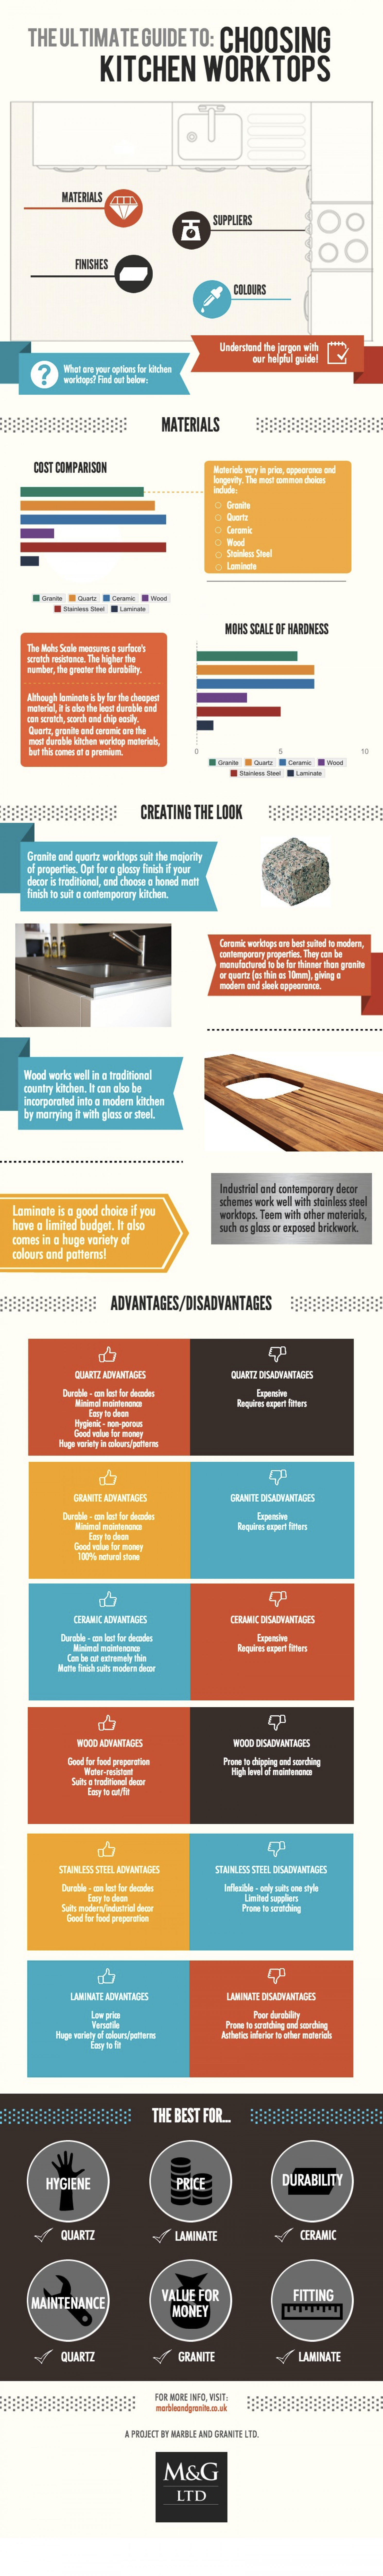 The Ultimate Guide to Choosing Kitchen Worktops Infographic